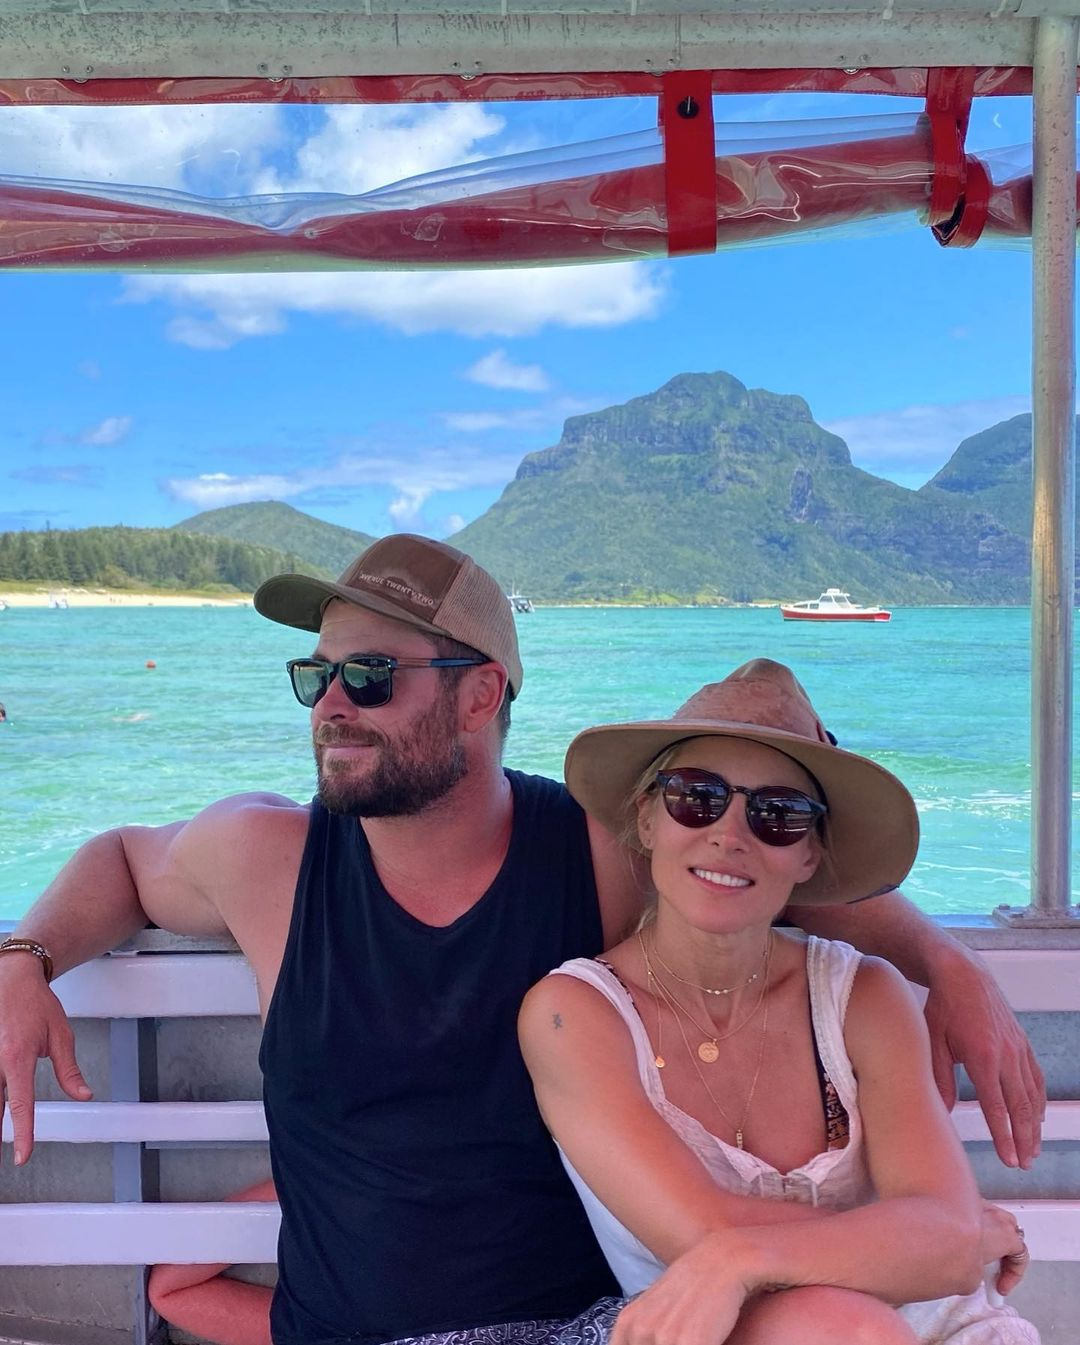 Chris Hemsworth Shares Shirtless Snaps From Family Vacation